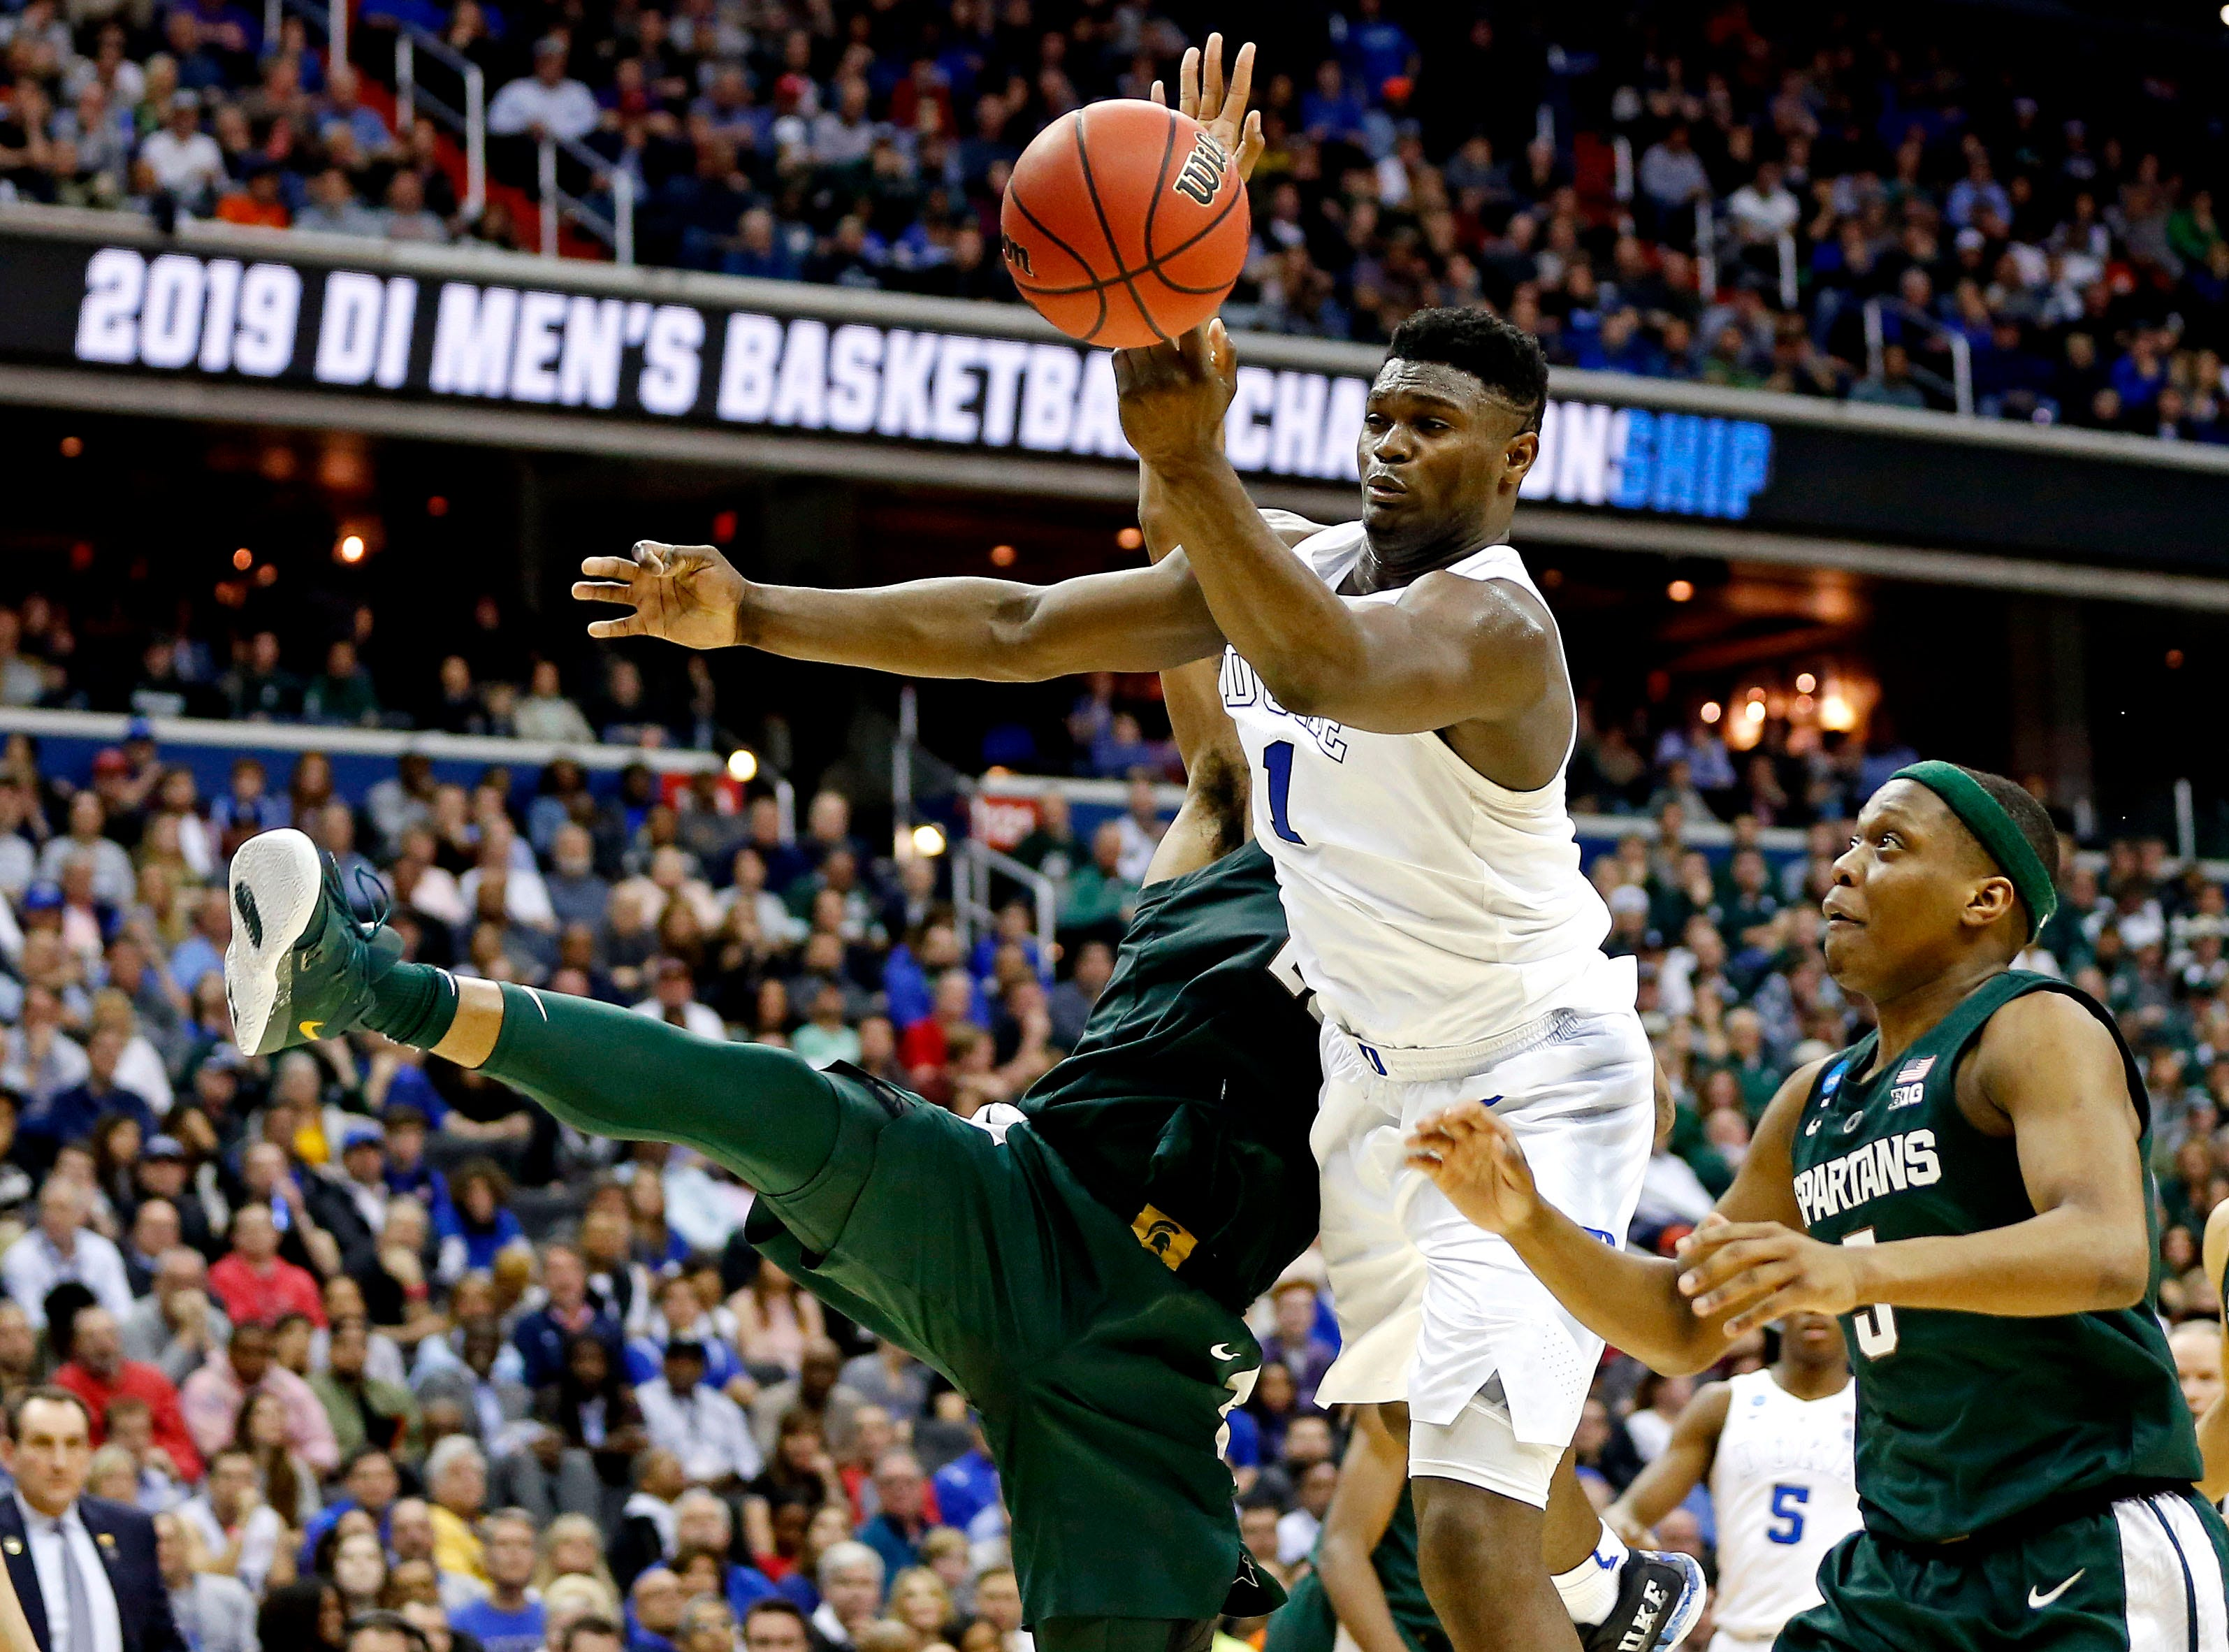 Mar 31, 2019; Washington, DC, USA; Duke Blue Devils forward Zion Williamson (1) goes for a reboot against Michigan State Spartans guard Cassius Winston (5) and forward Xavier Tillman (23) during the second half in the championship game of the east regional of the 2019 NCAA Tournament at Capital One Arena. Mandatory Credit: Amber Searls-USA TODAY Sports